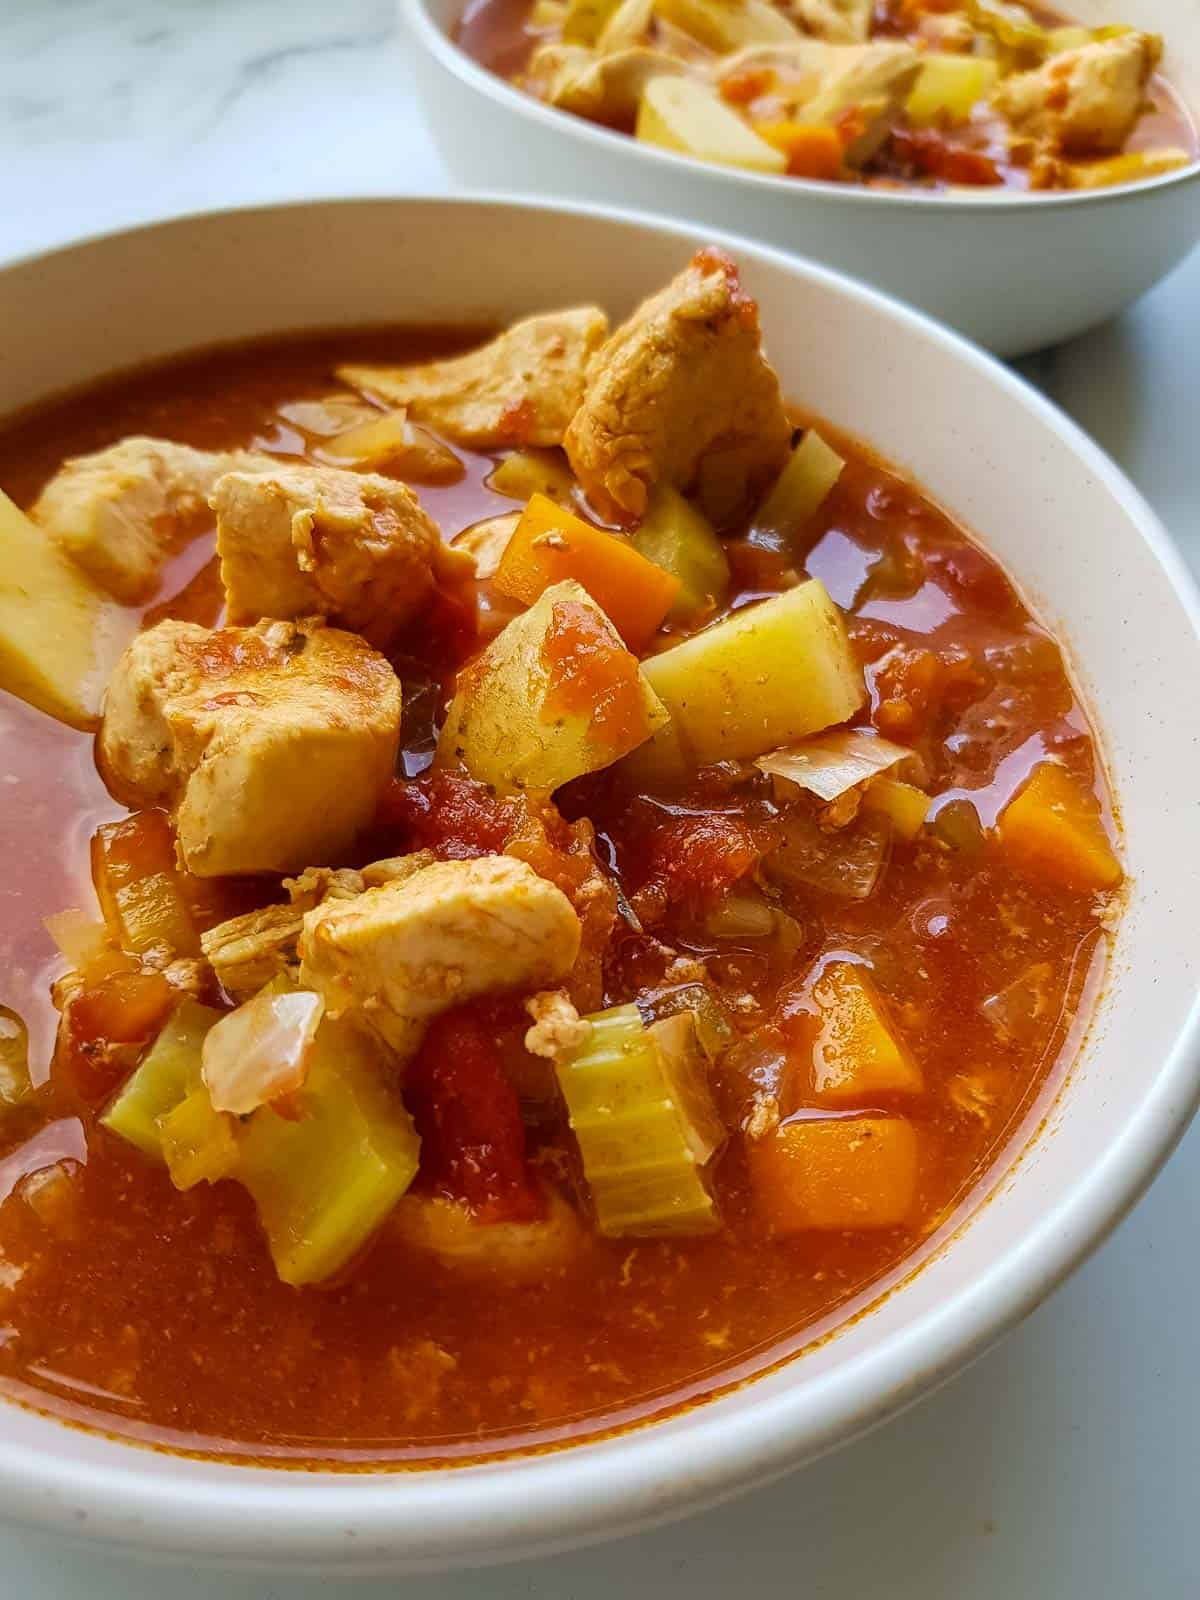 Chicken stew with tomatoes, potatoes, carrots and celery.